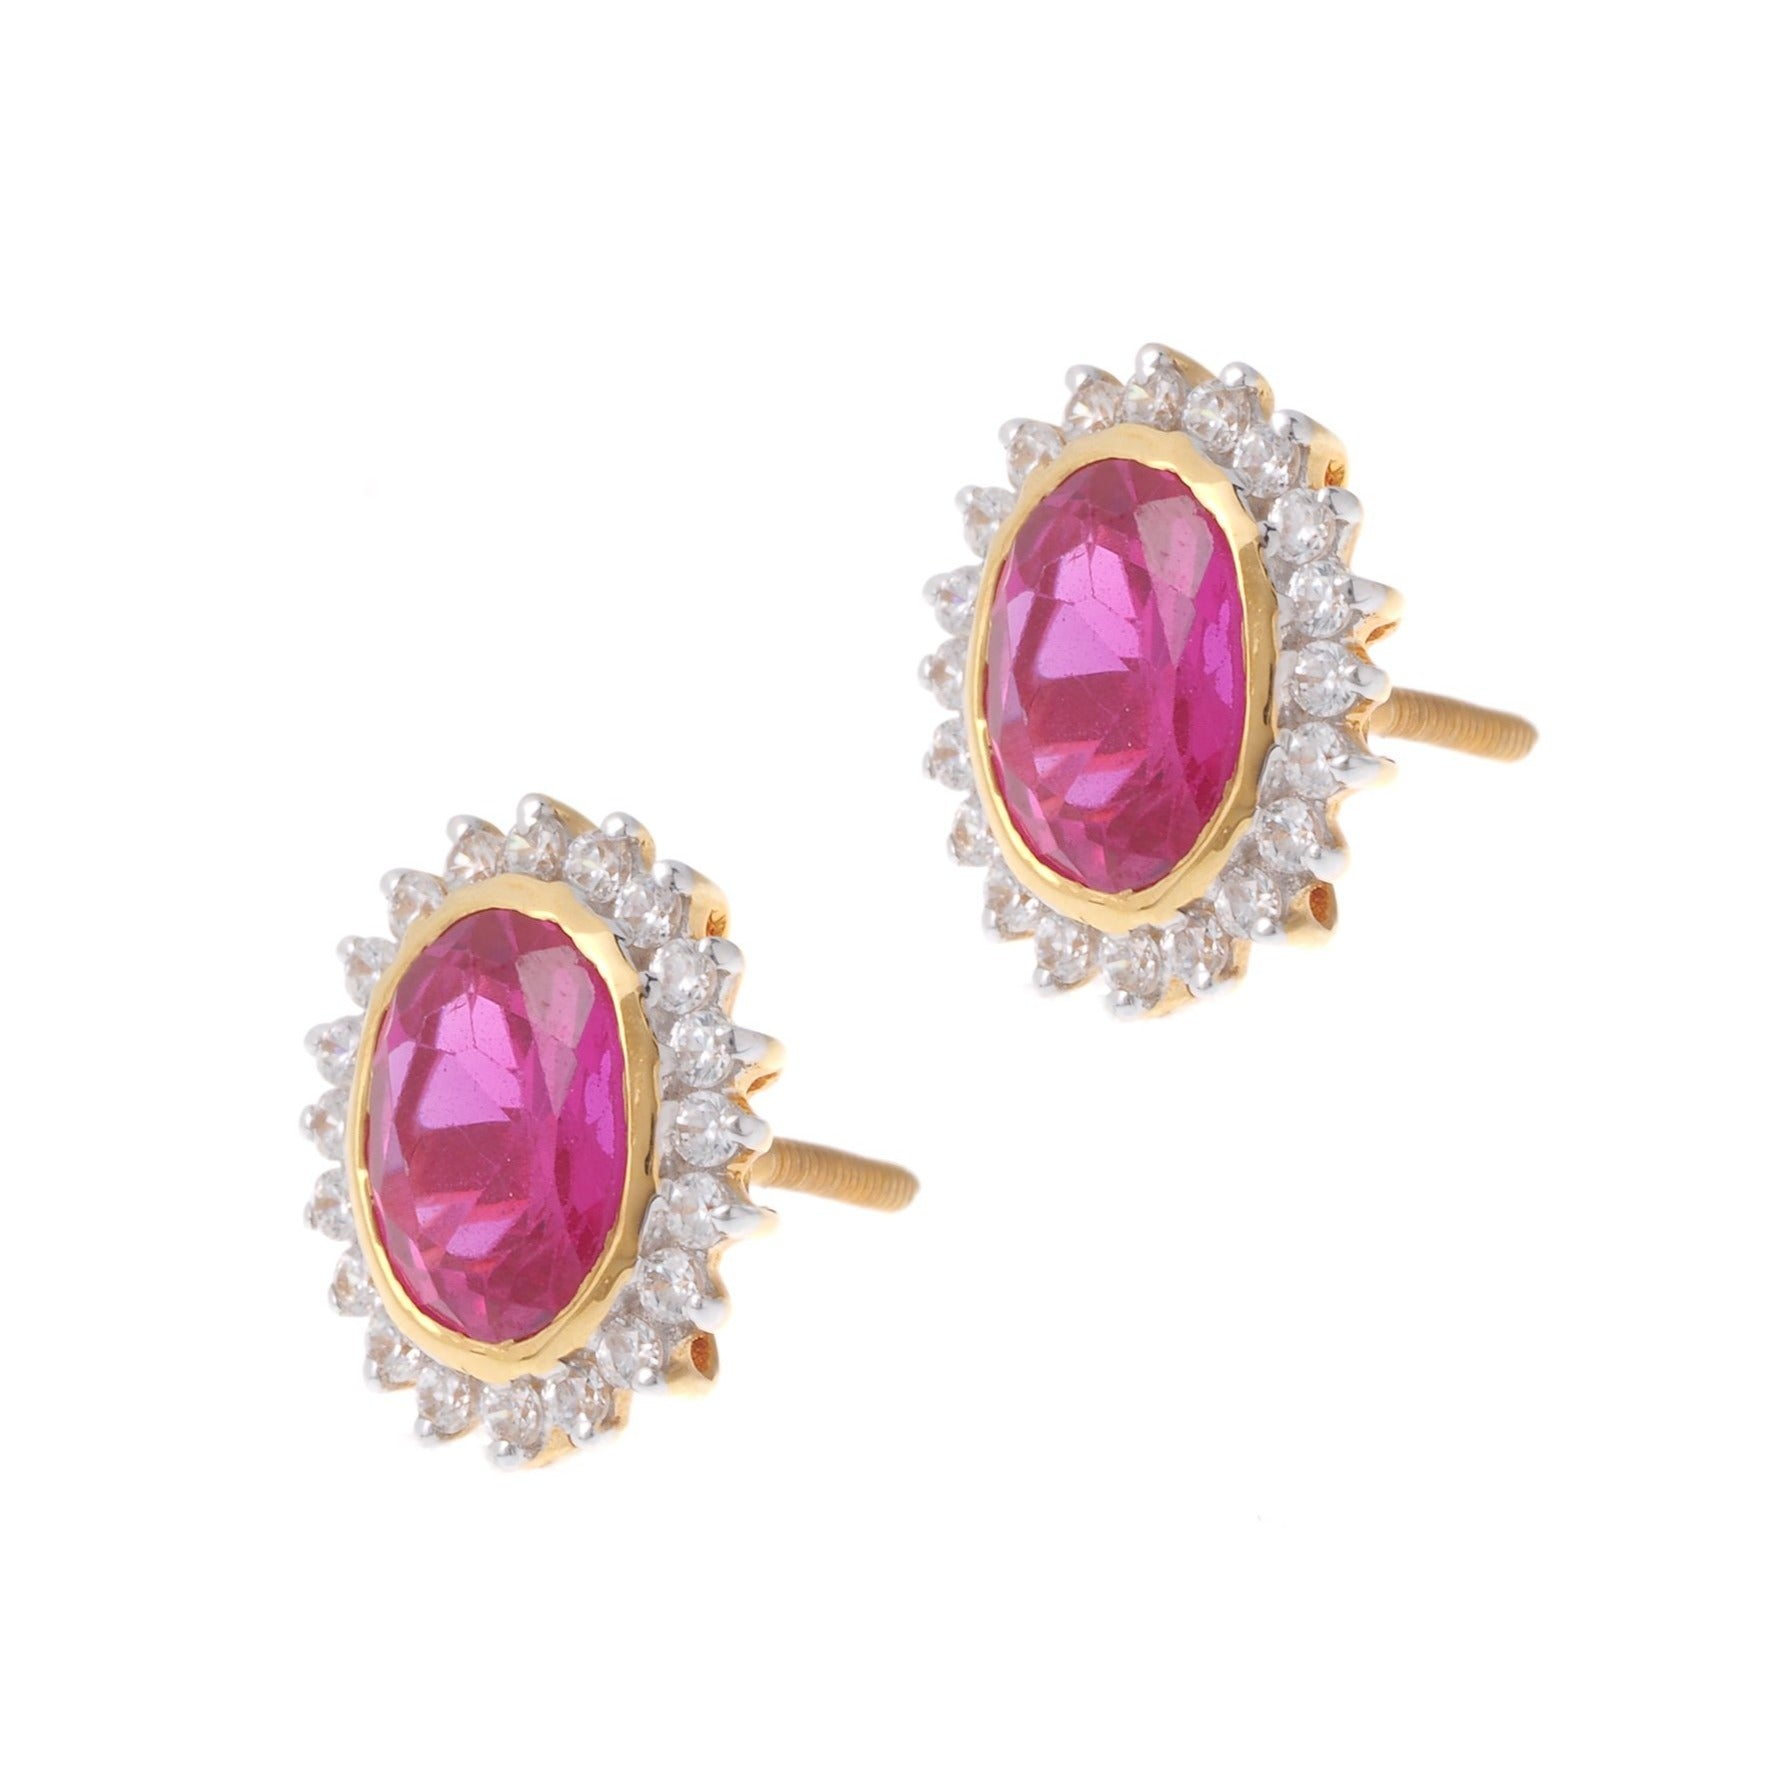 22ct Gold Stud Earrings Cubic Zirconia (White & Red) with Screw Backs (5.34g) PS13038